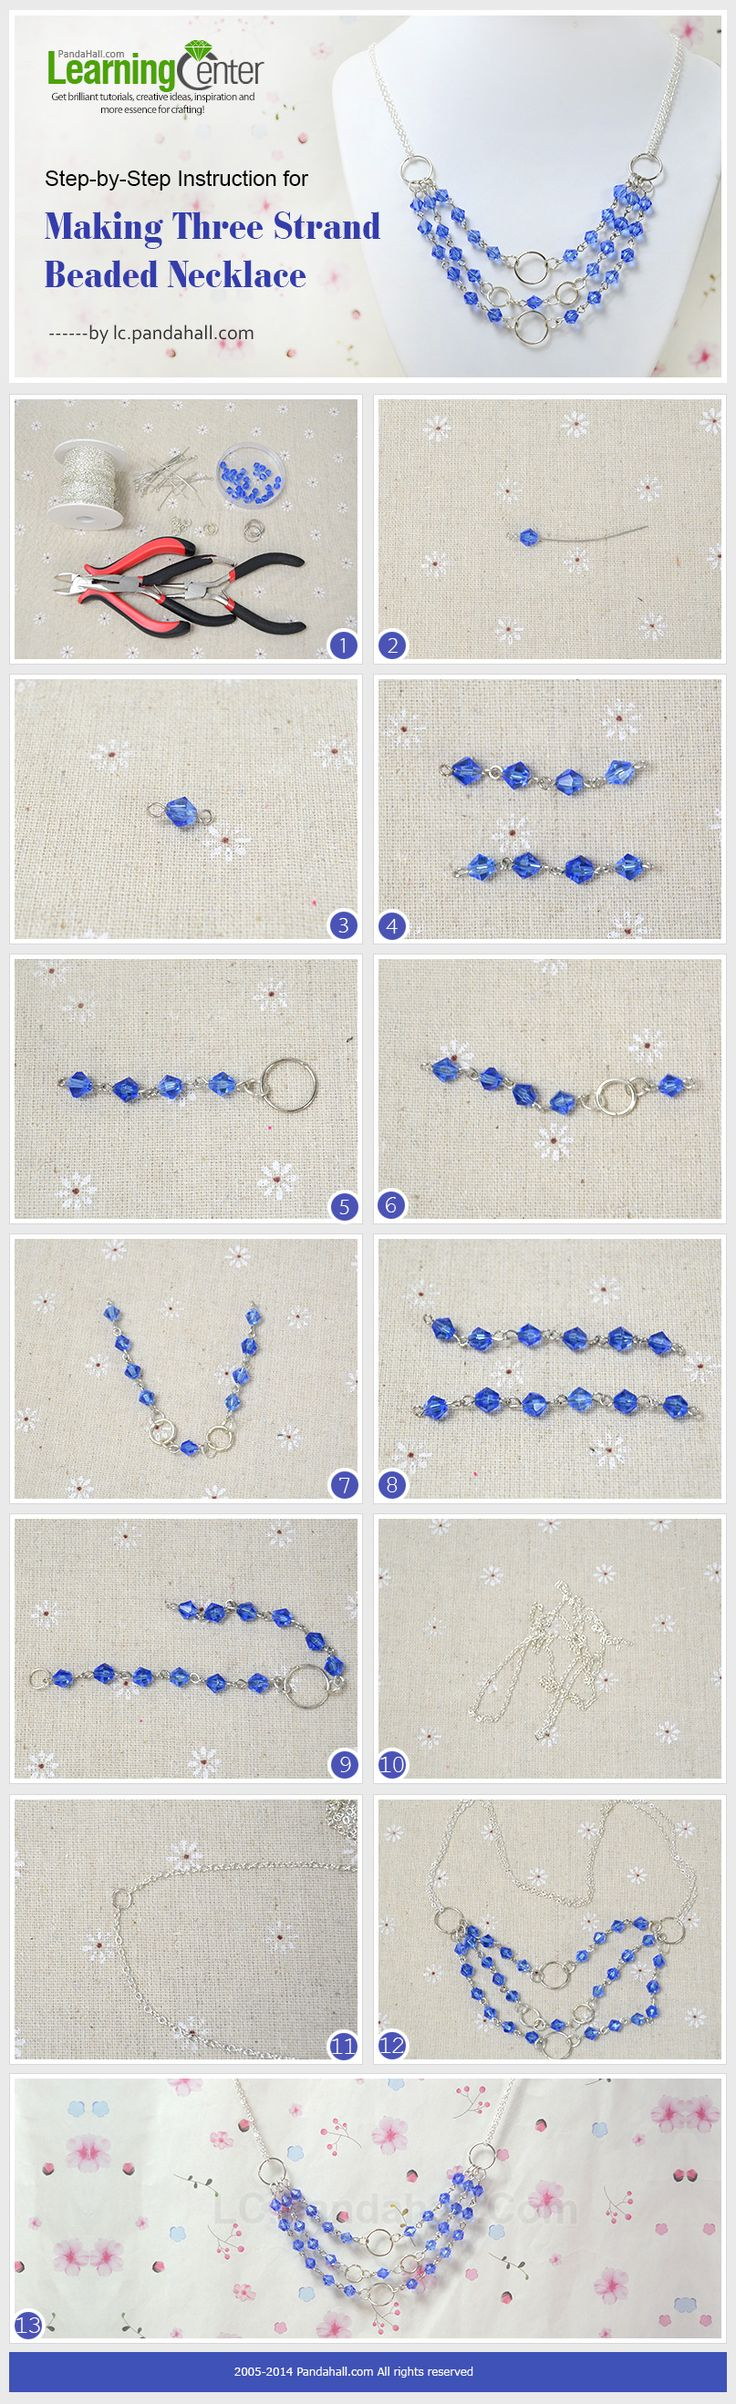 Step-by-Step Instruction for Making Three Strand Beaded Necklace